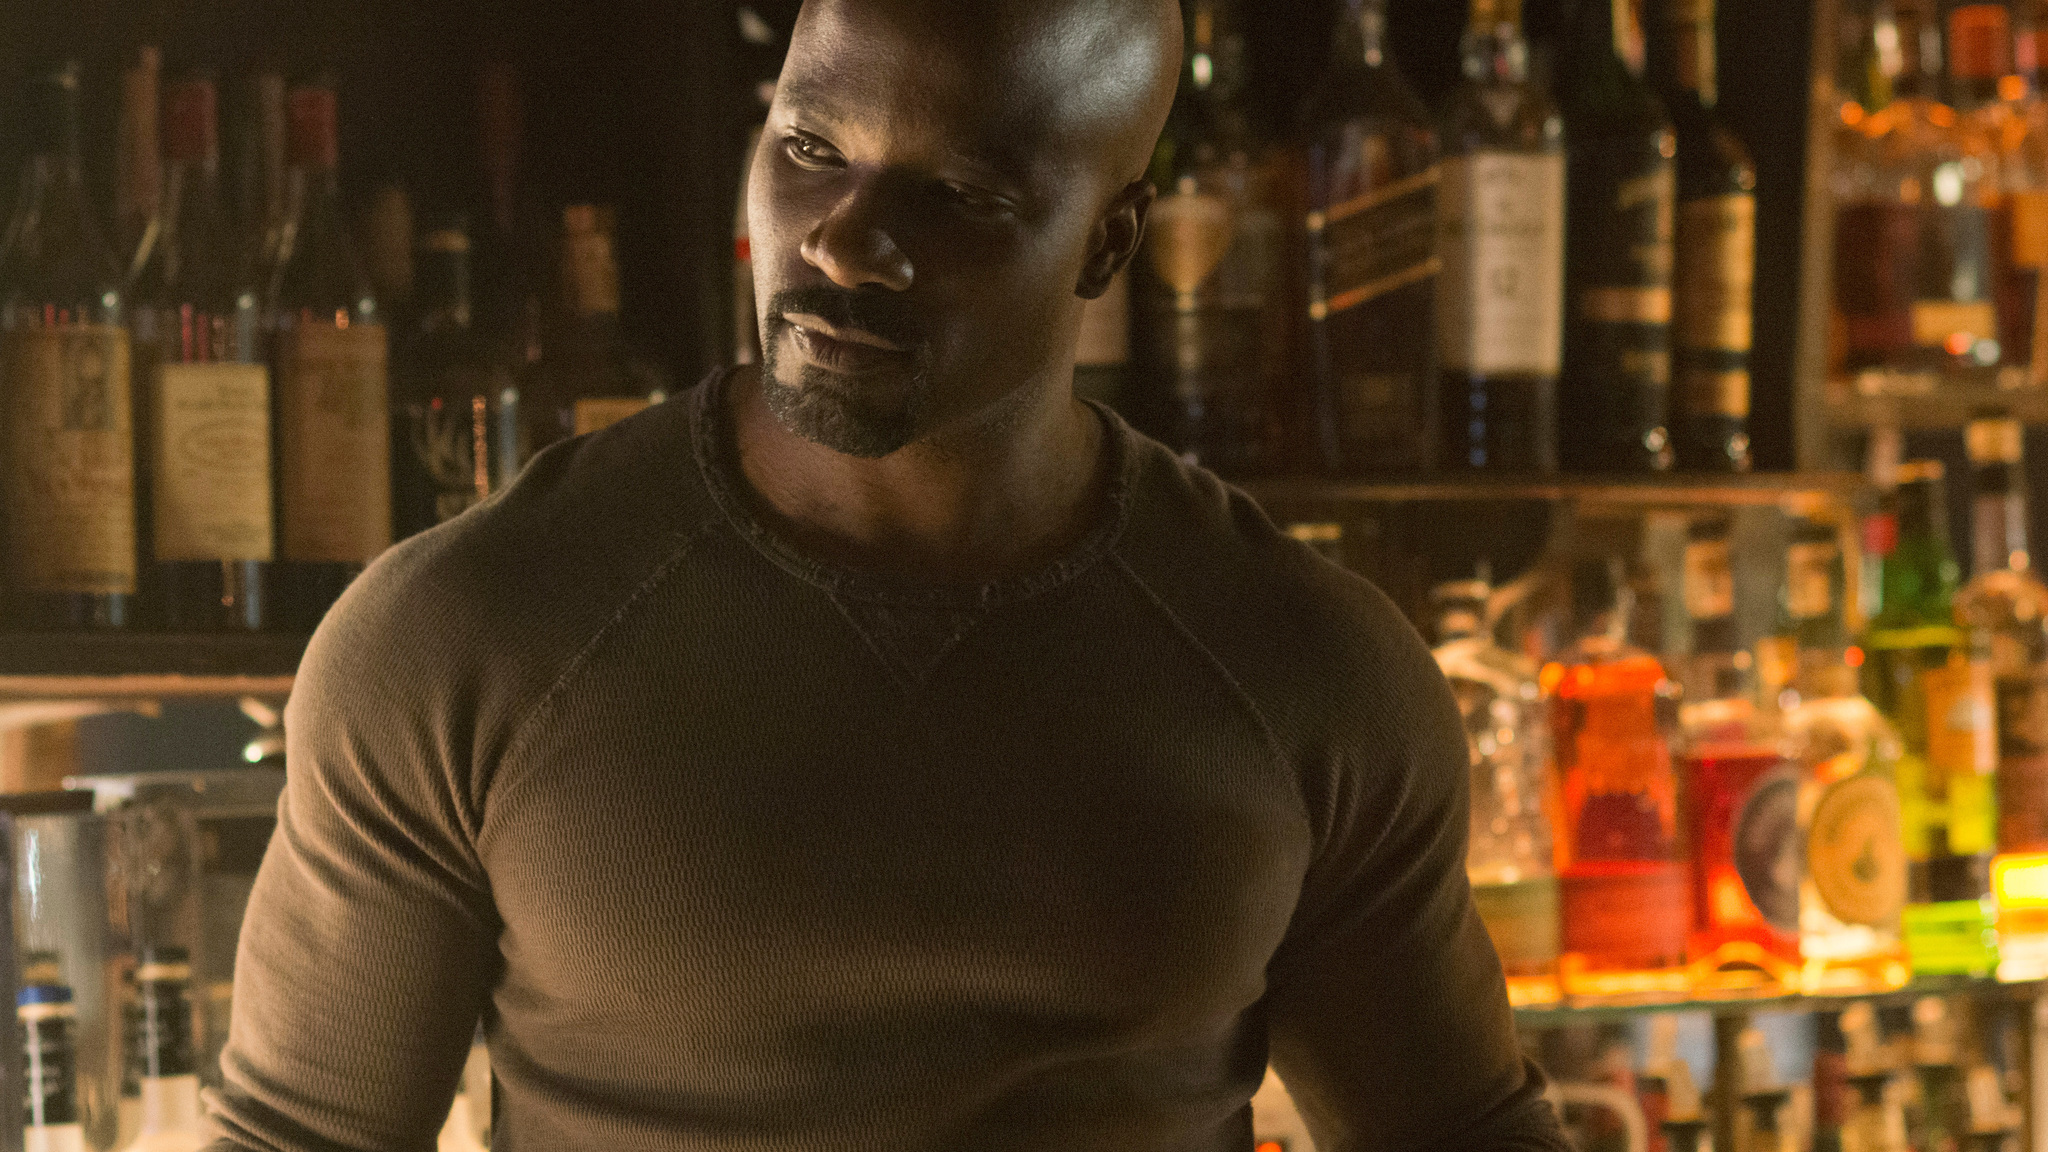 2048x1152 - Mike Colter Wallpapers 21